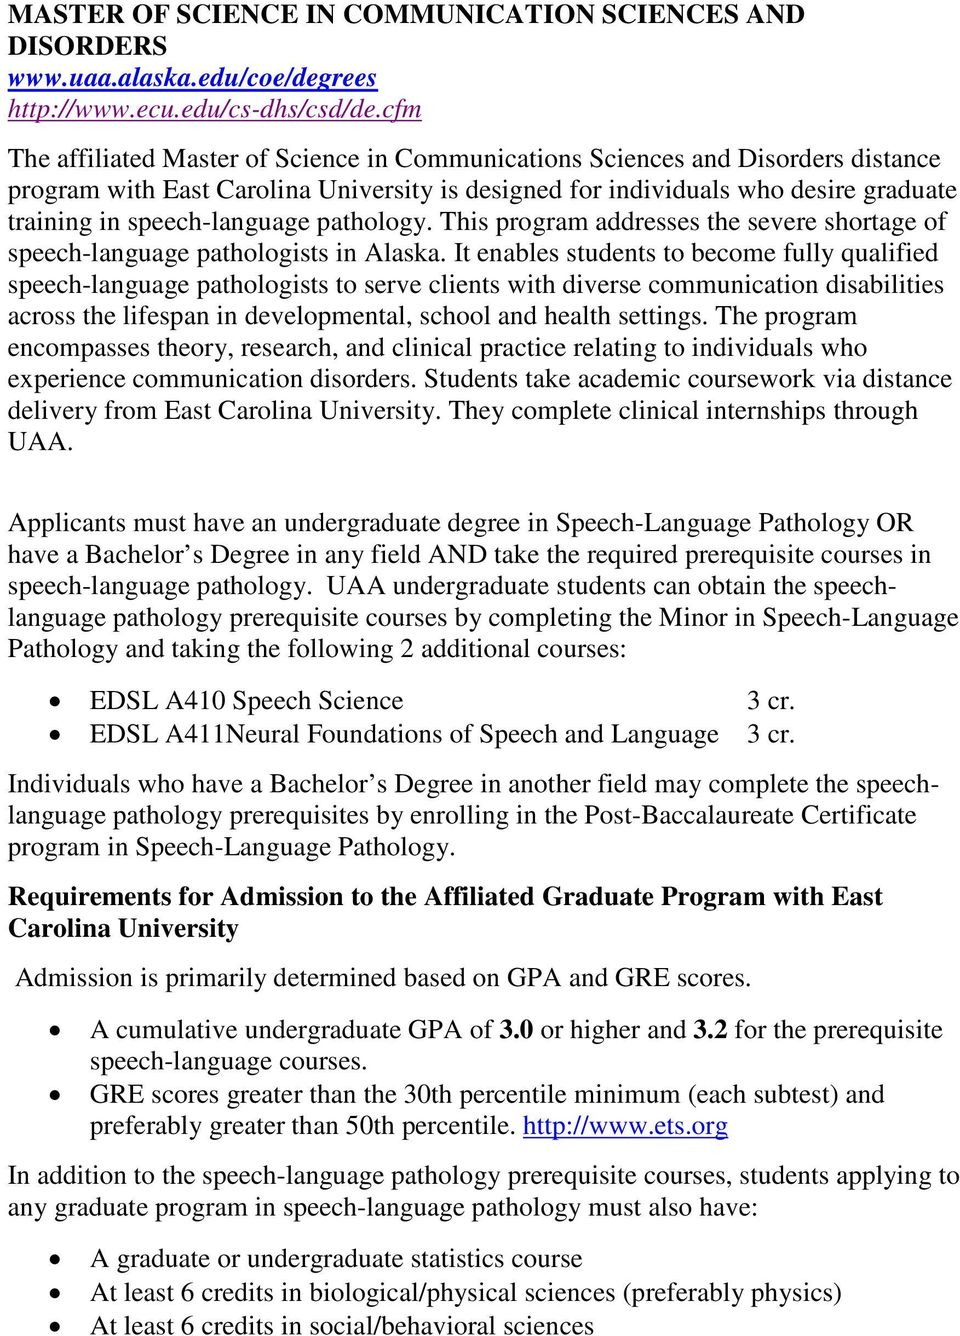 speech-language pathology. This program addresses the severe shortage of speech-language pathologists in Alaska.